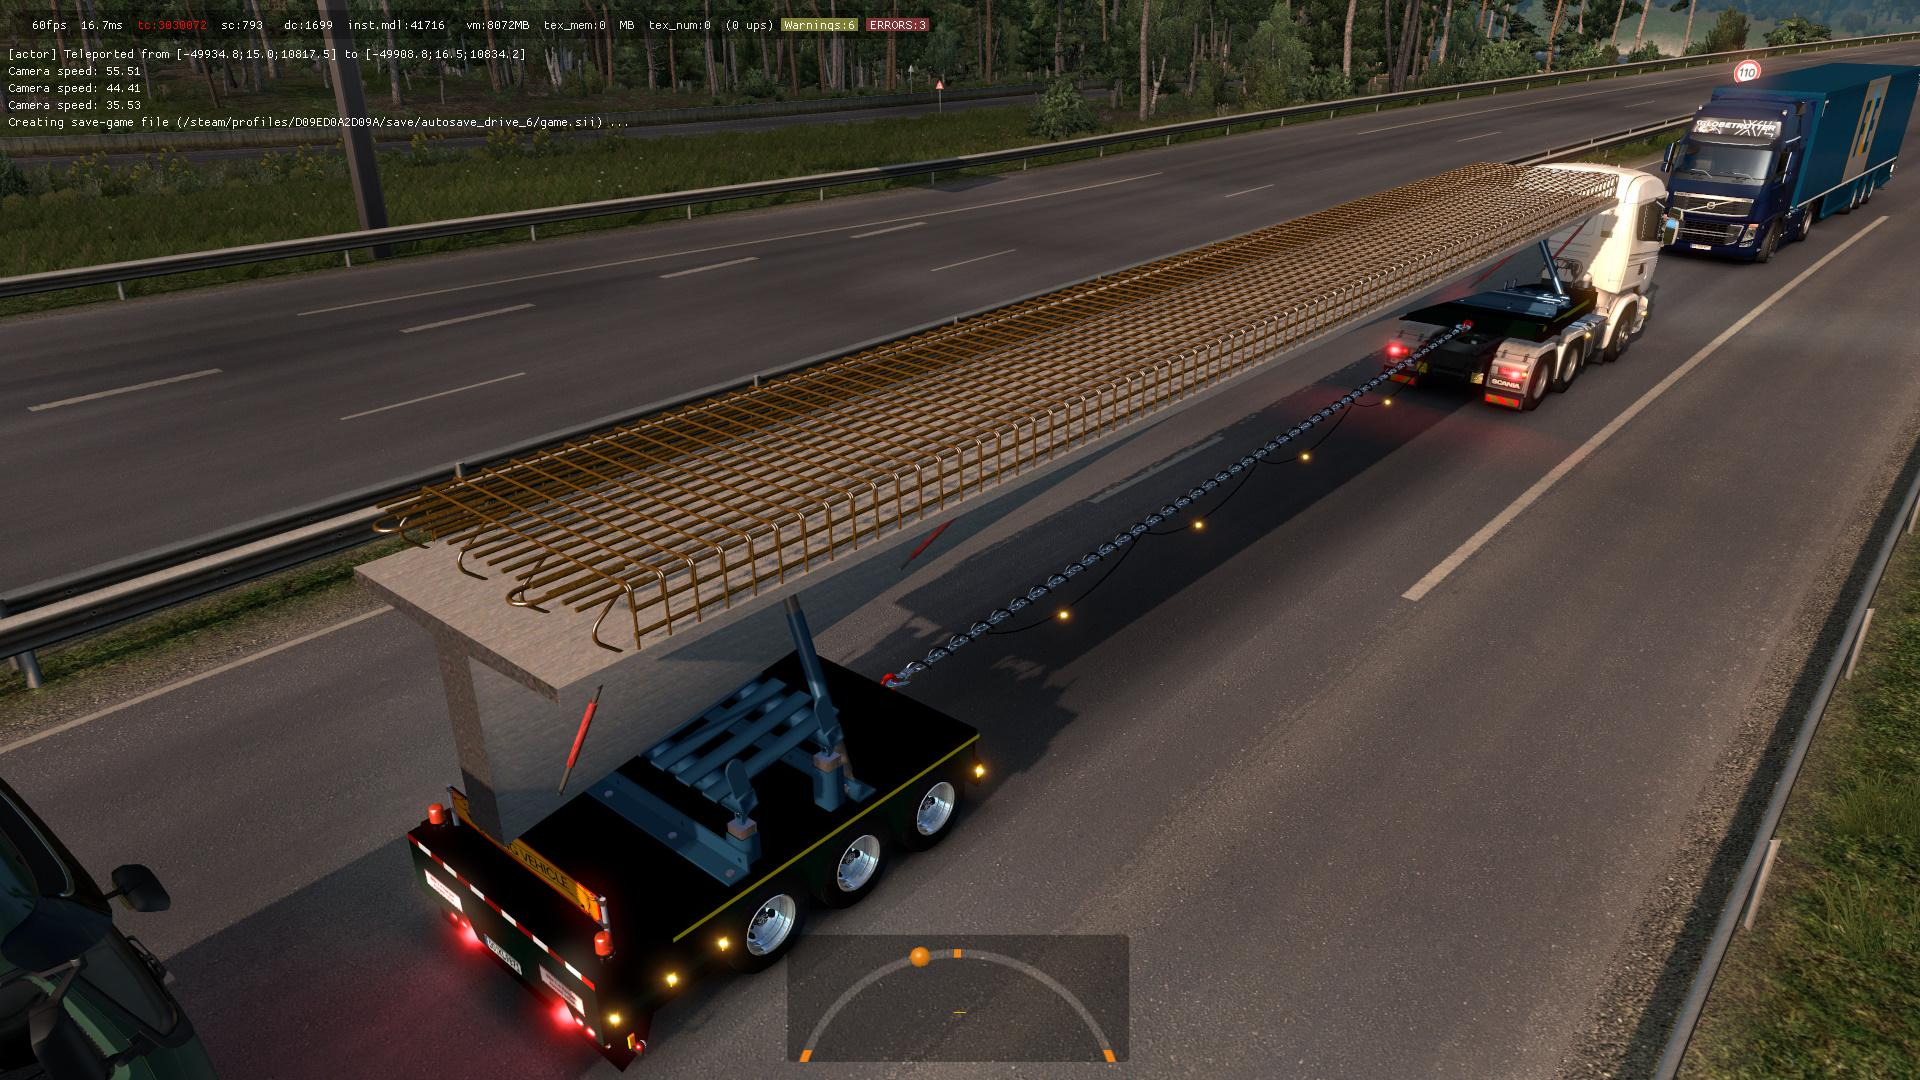 ETS2 - Trailers with Construction Structures in Traffic Mod (1.36.x)